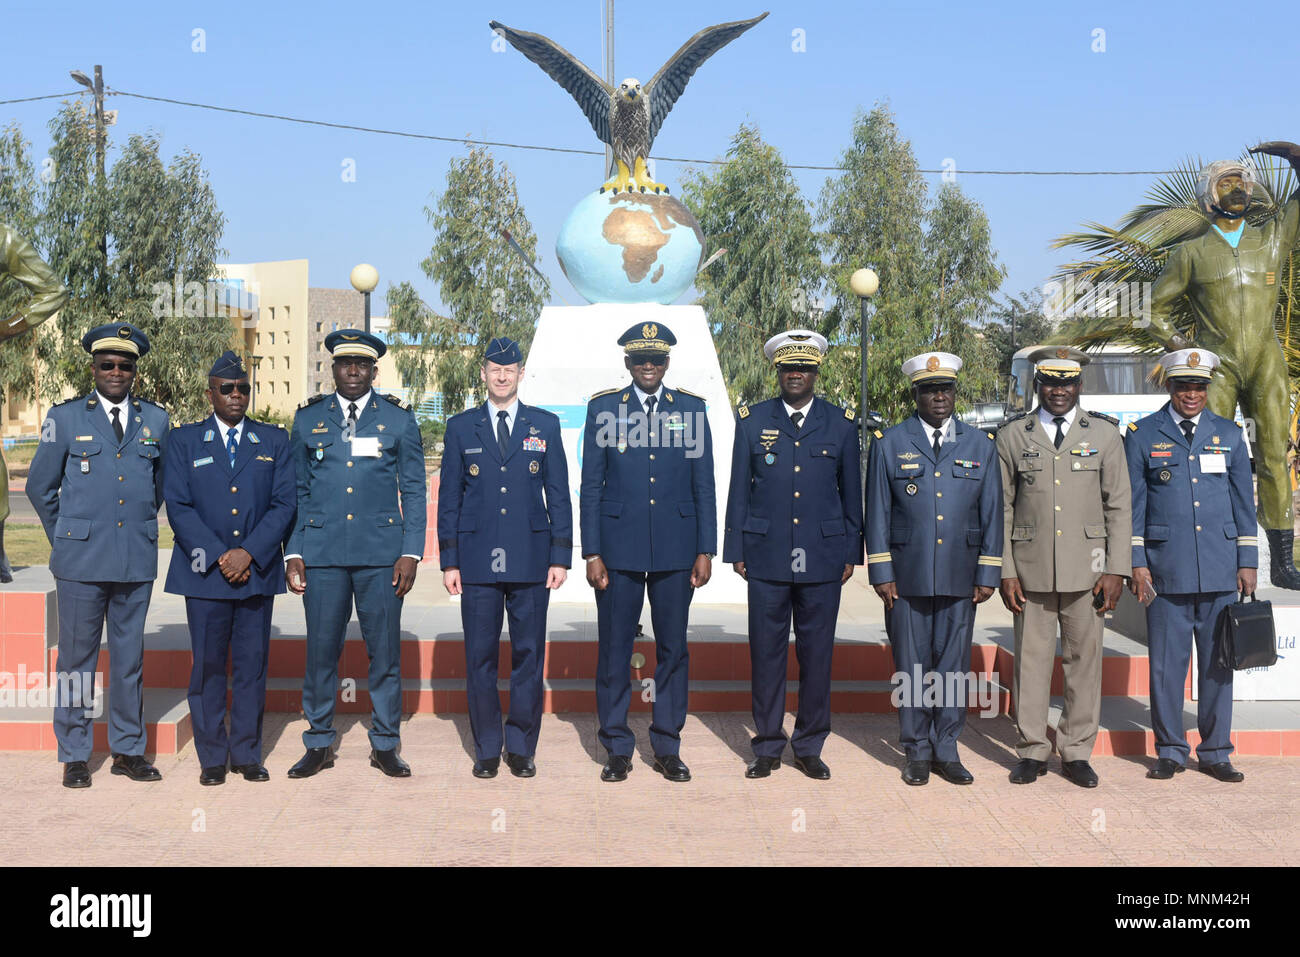 Distinguished visitors from participating African countries pose for a photo after the opening ceremony of African Partnership Flight Senegal at Captain Andalla Cissé Air Base, Senegal, March 19, 2018.  The purpose of APF Senegal is to conduct multilateral, military-to-military engagements and security assistance with African air forces. - Stock Image